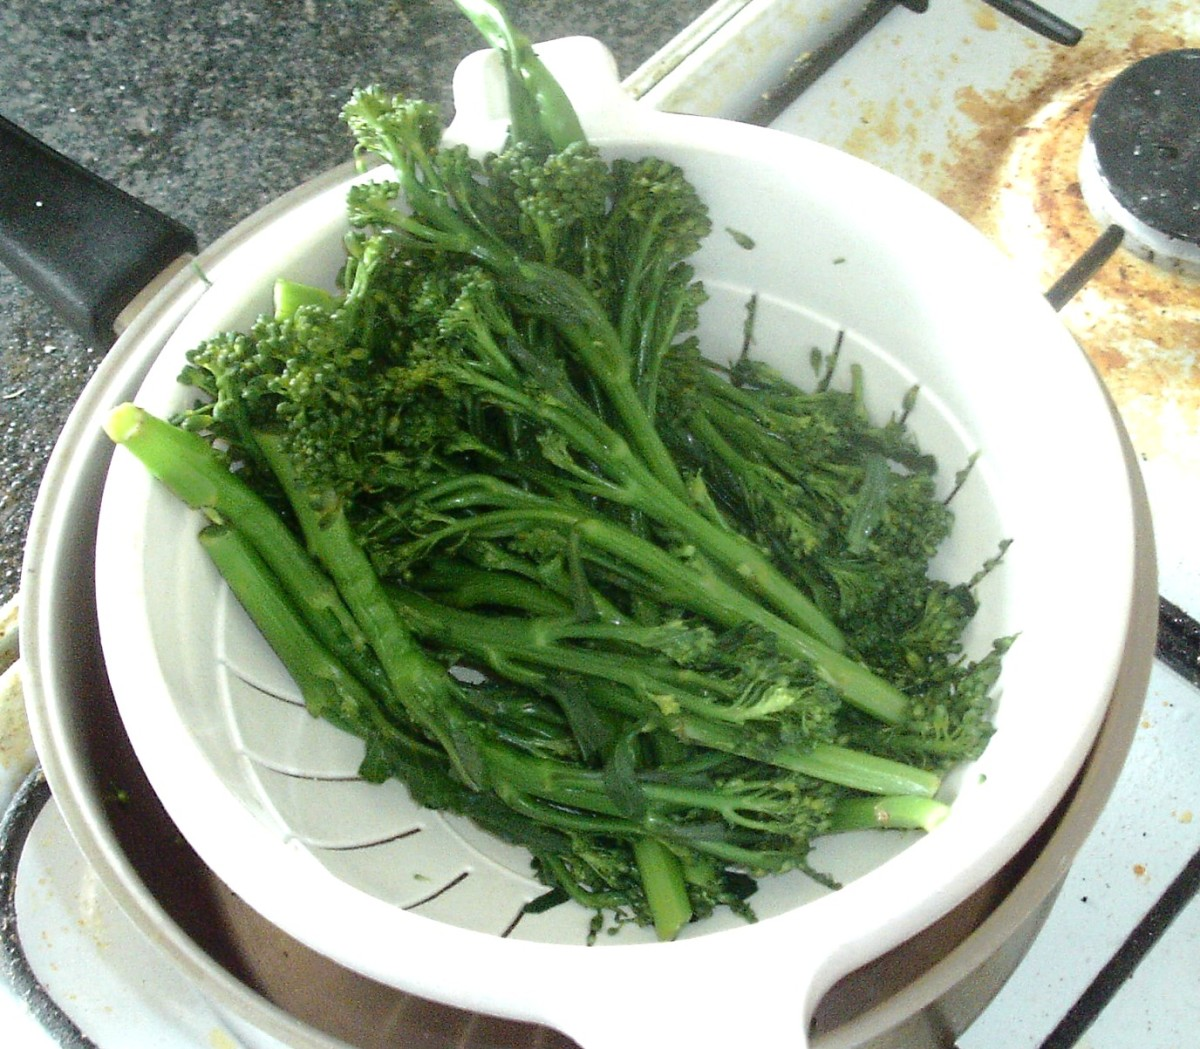 Tenderstem broccoli is drained and left to cool